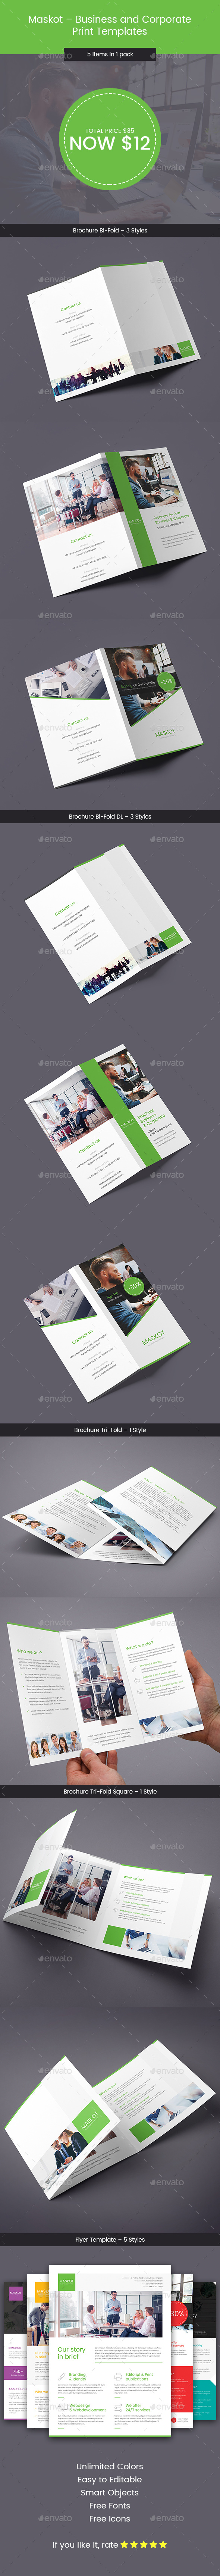 Maskot – Business and Corporate – Bundle Print Templates 5 in 1 - Corporate Brochures